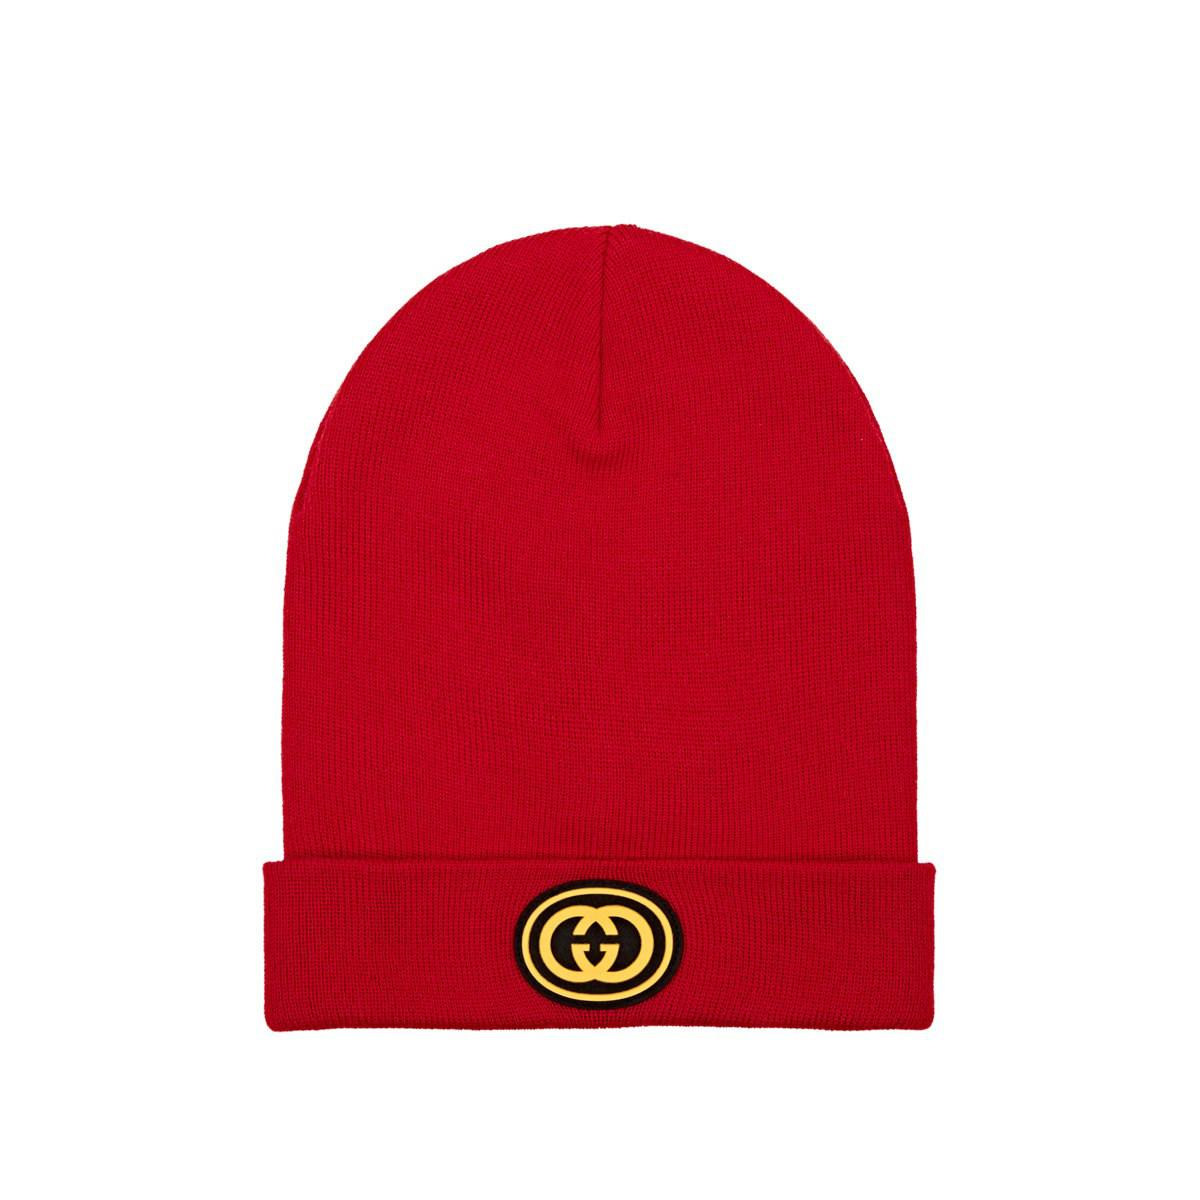 Gucci - Red Ny Yankeestm Wool Beanie for Men - Lyst. View fullscreen 251c11b33bff